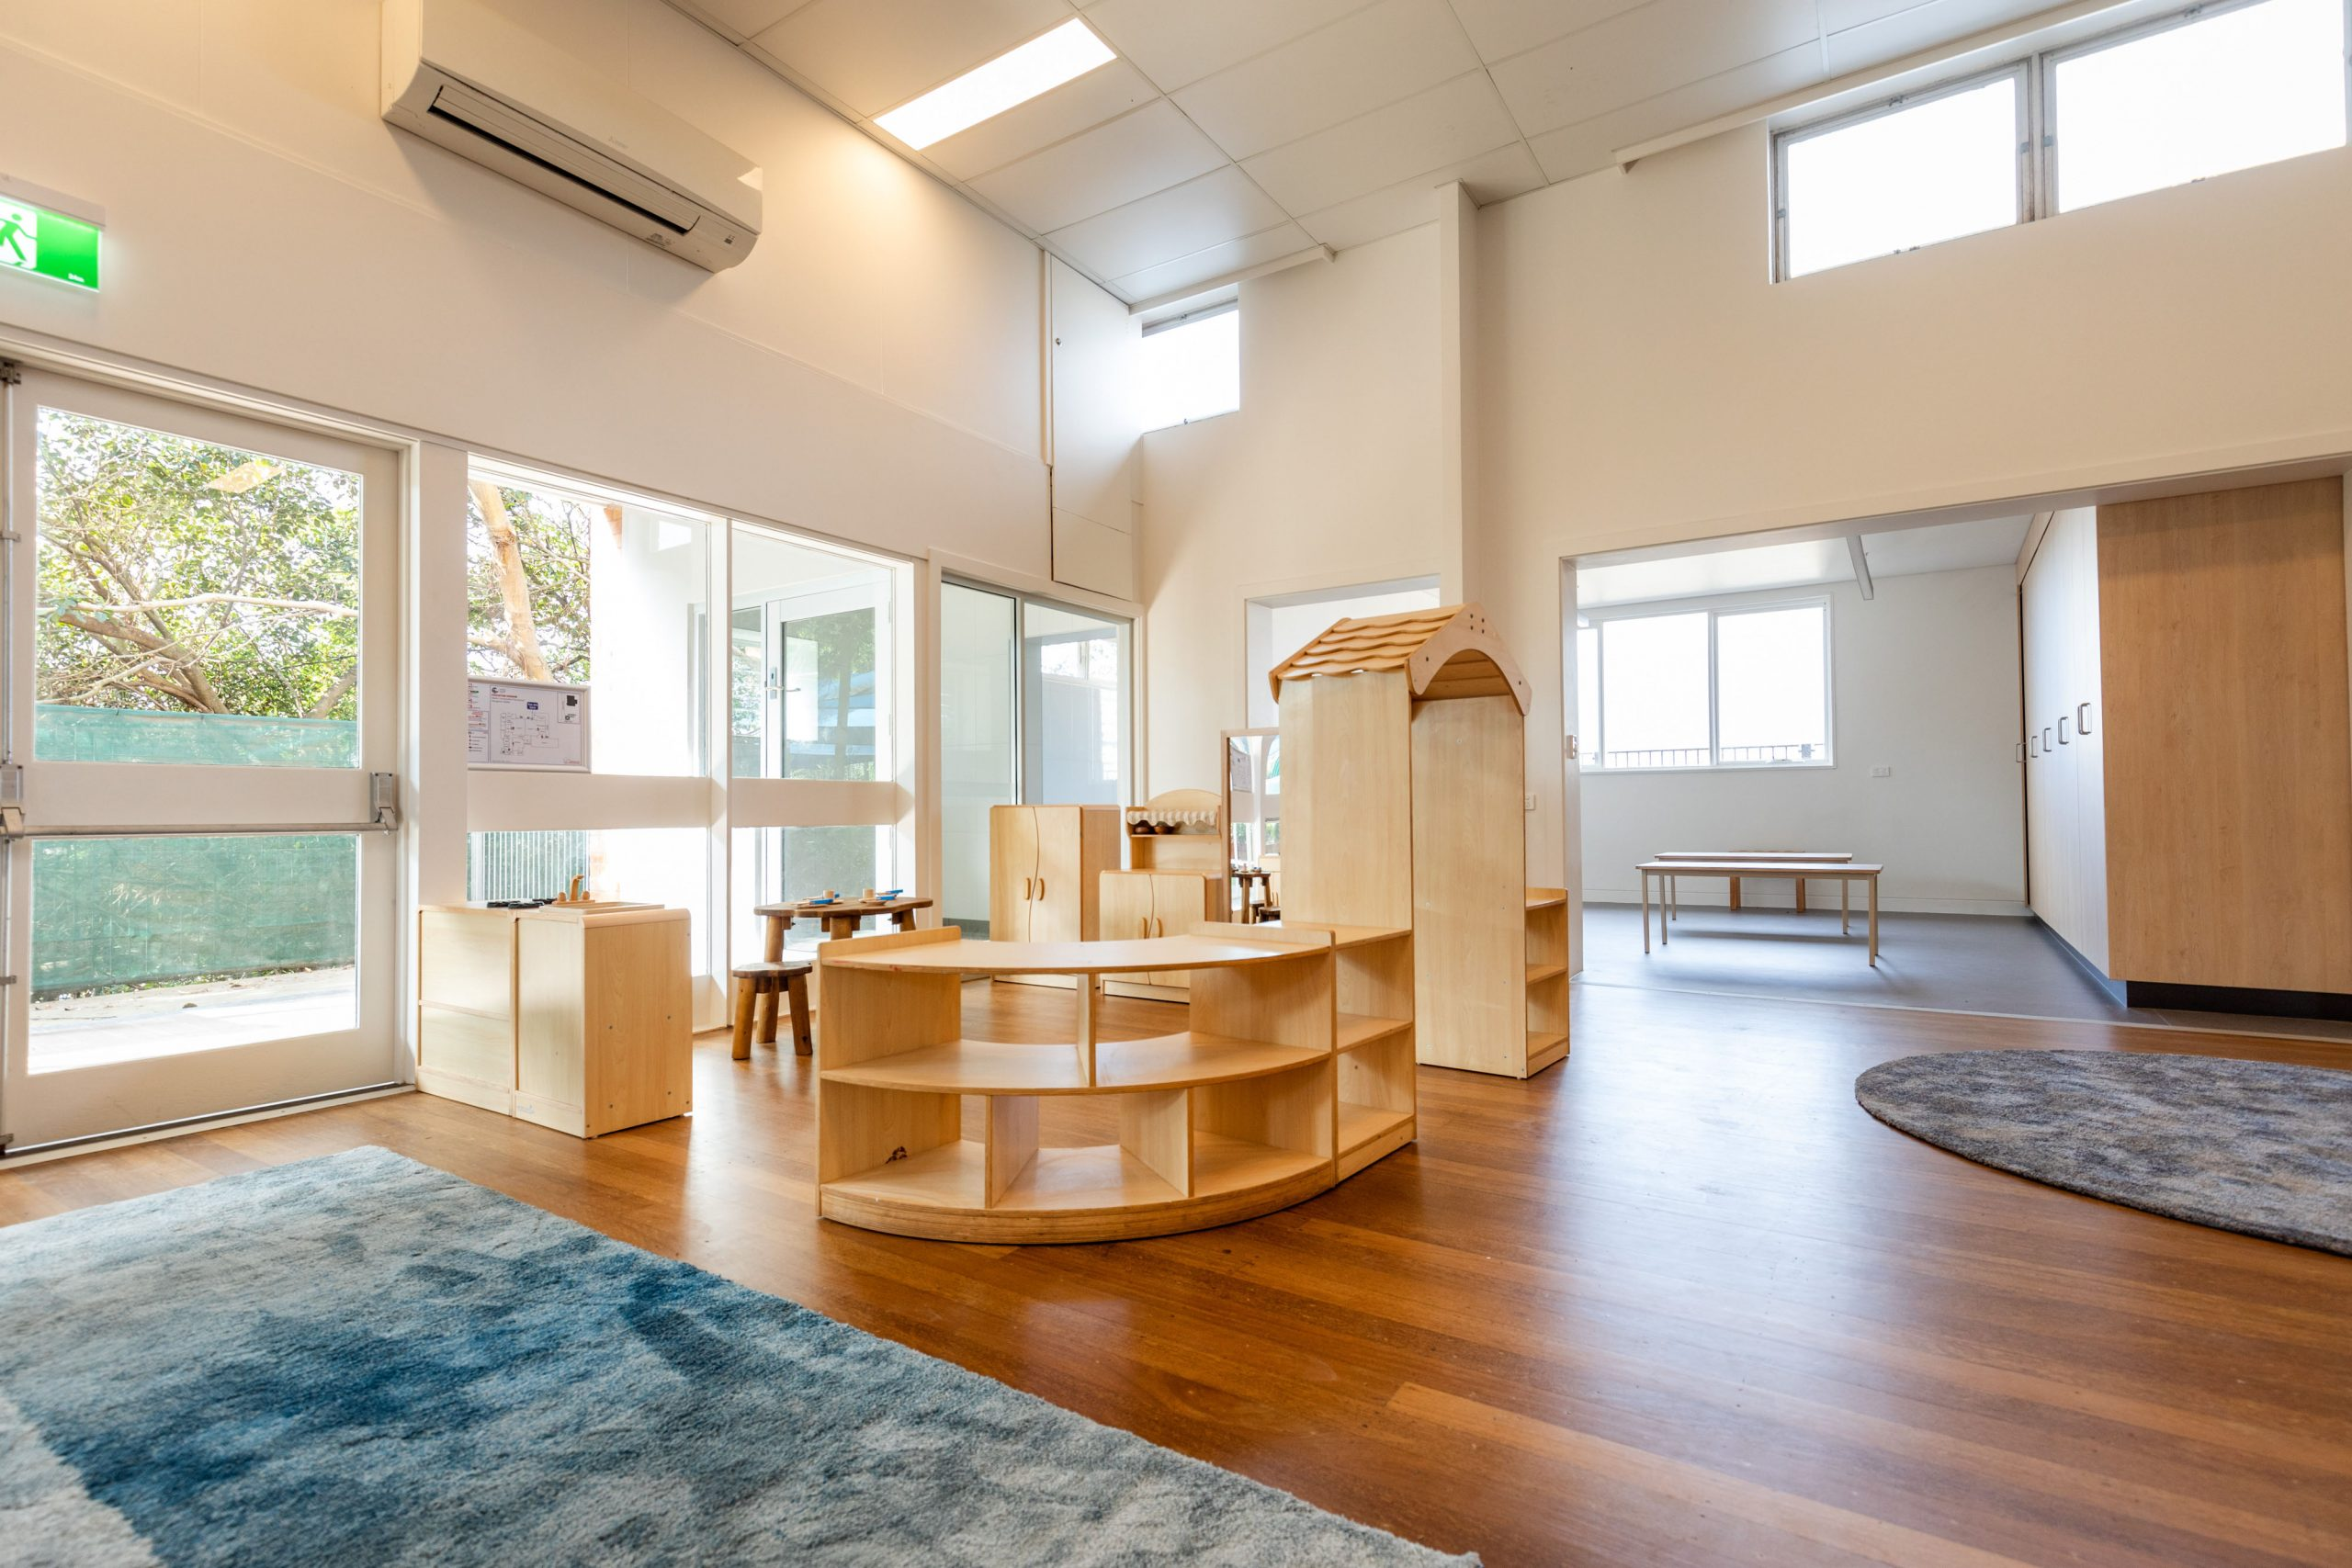 Kangaroo Street Childcare and Community Centre's Gallery Image